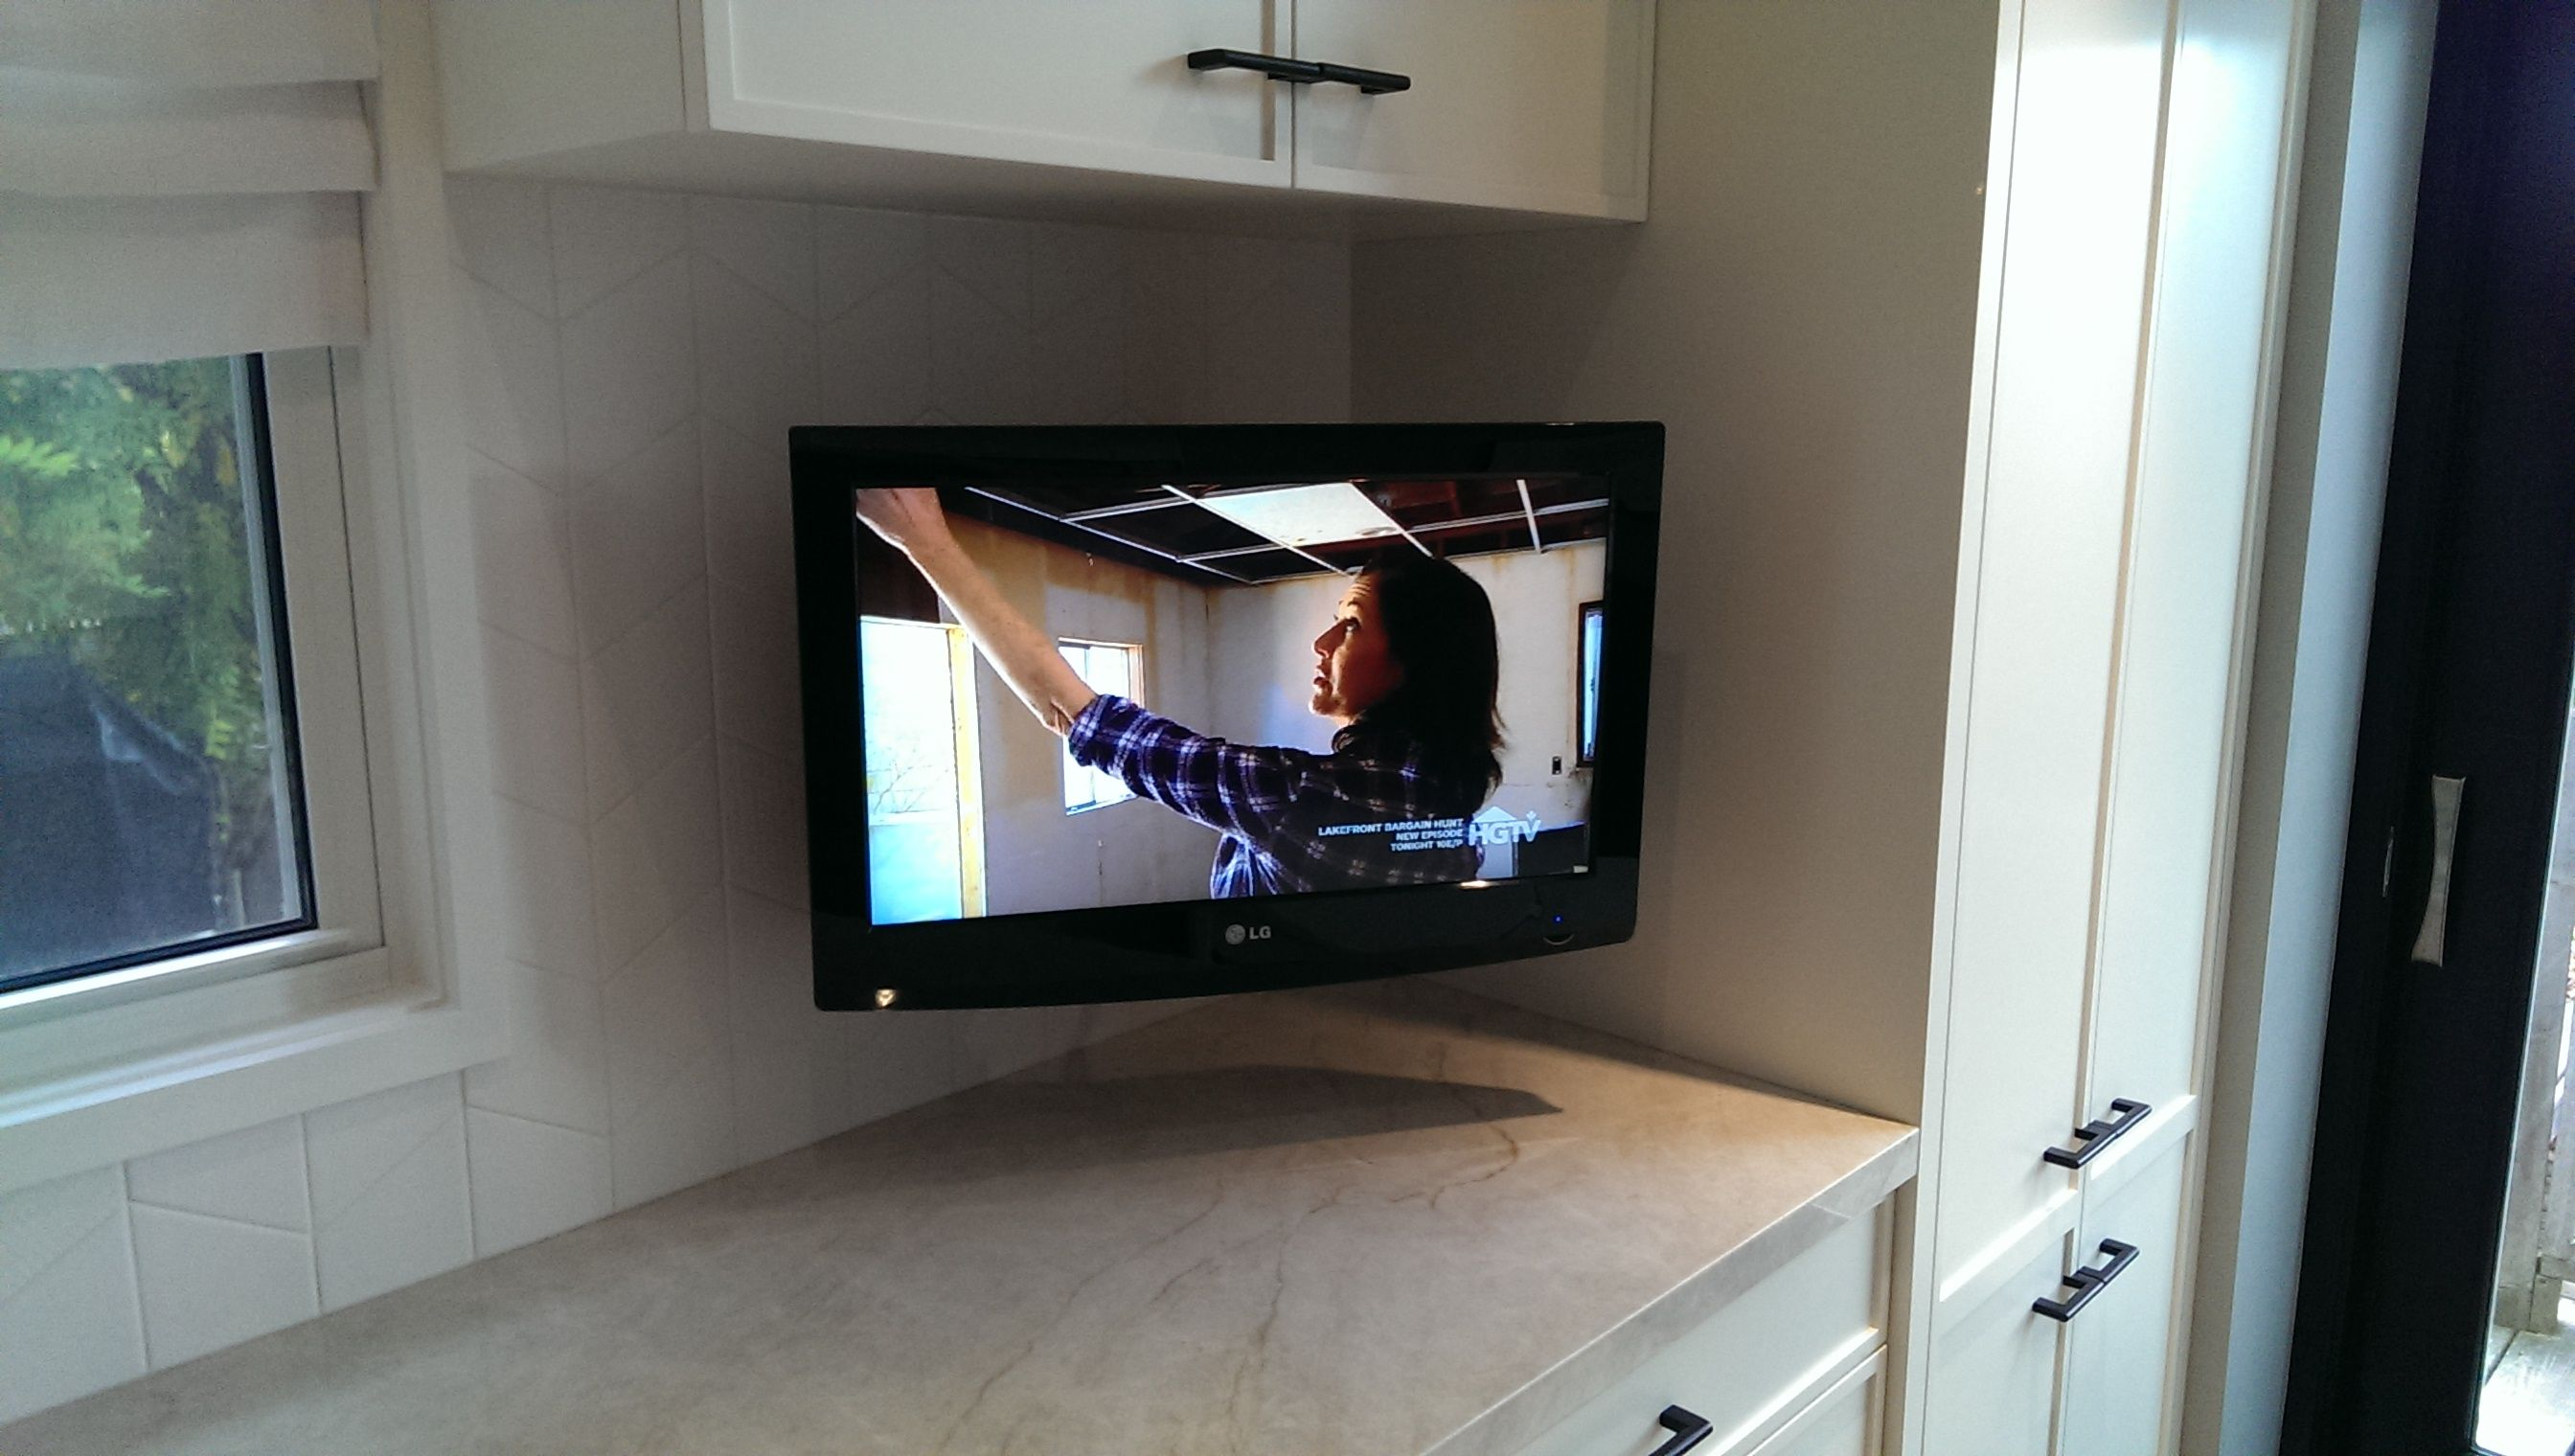 Kitchen Tv No Visible Cables Wall Mounted Tv Tv In Kitchen Wall Mounted Tv House Furniture Design